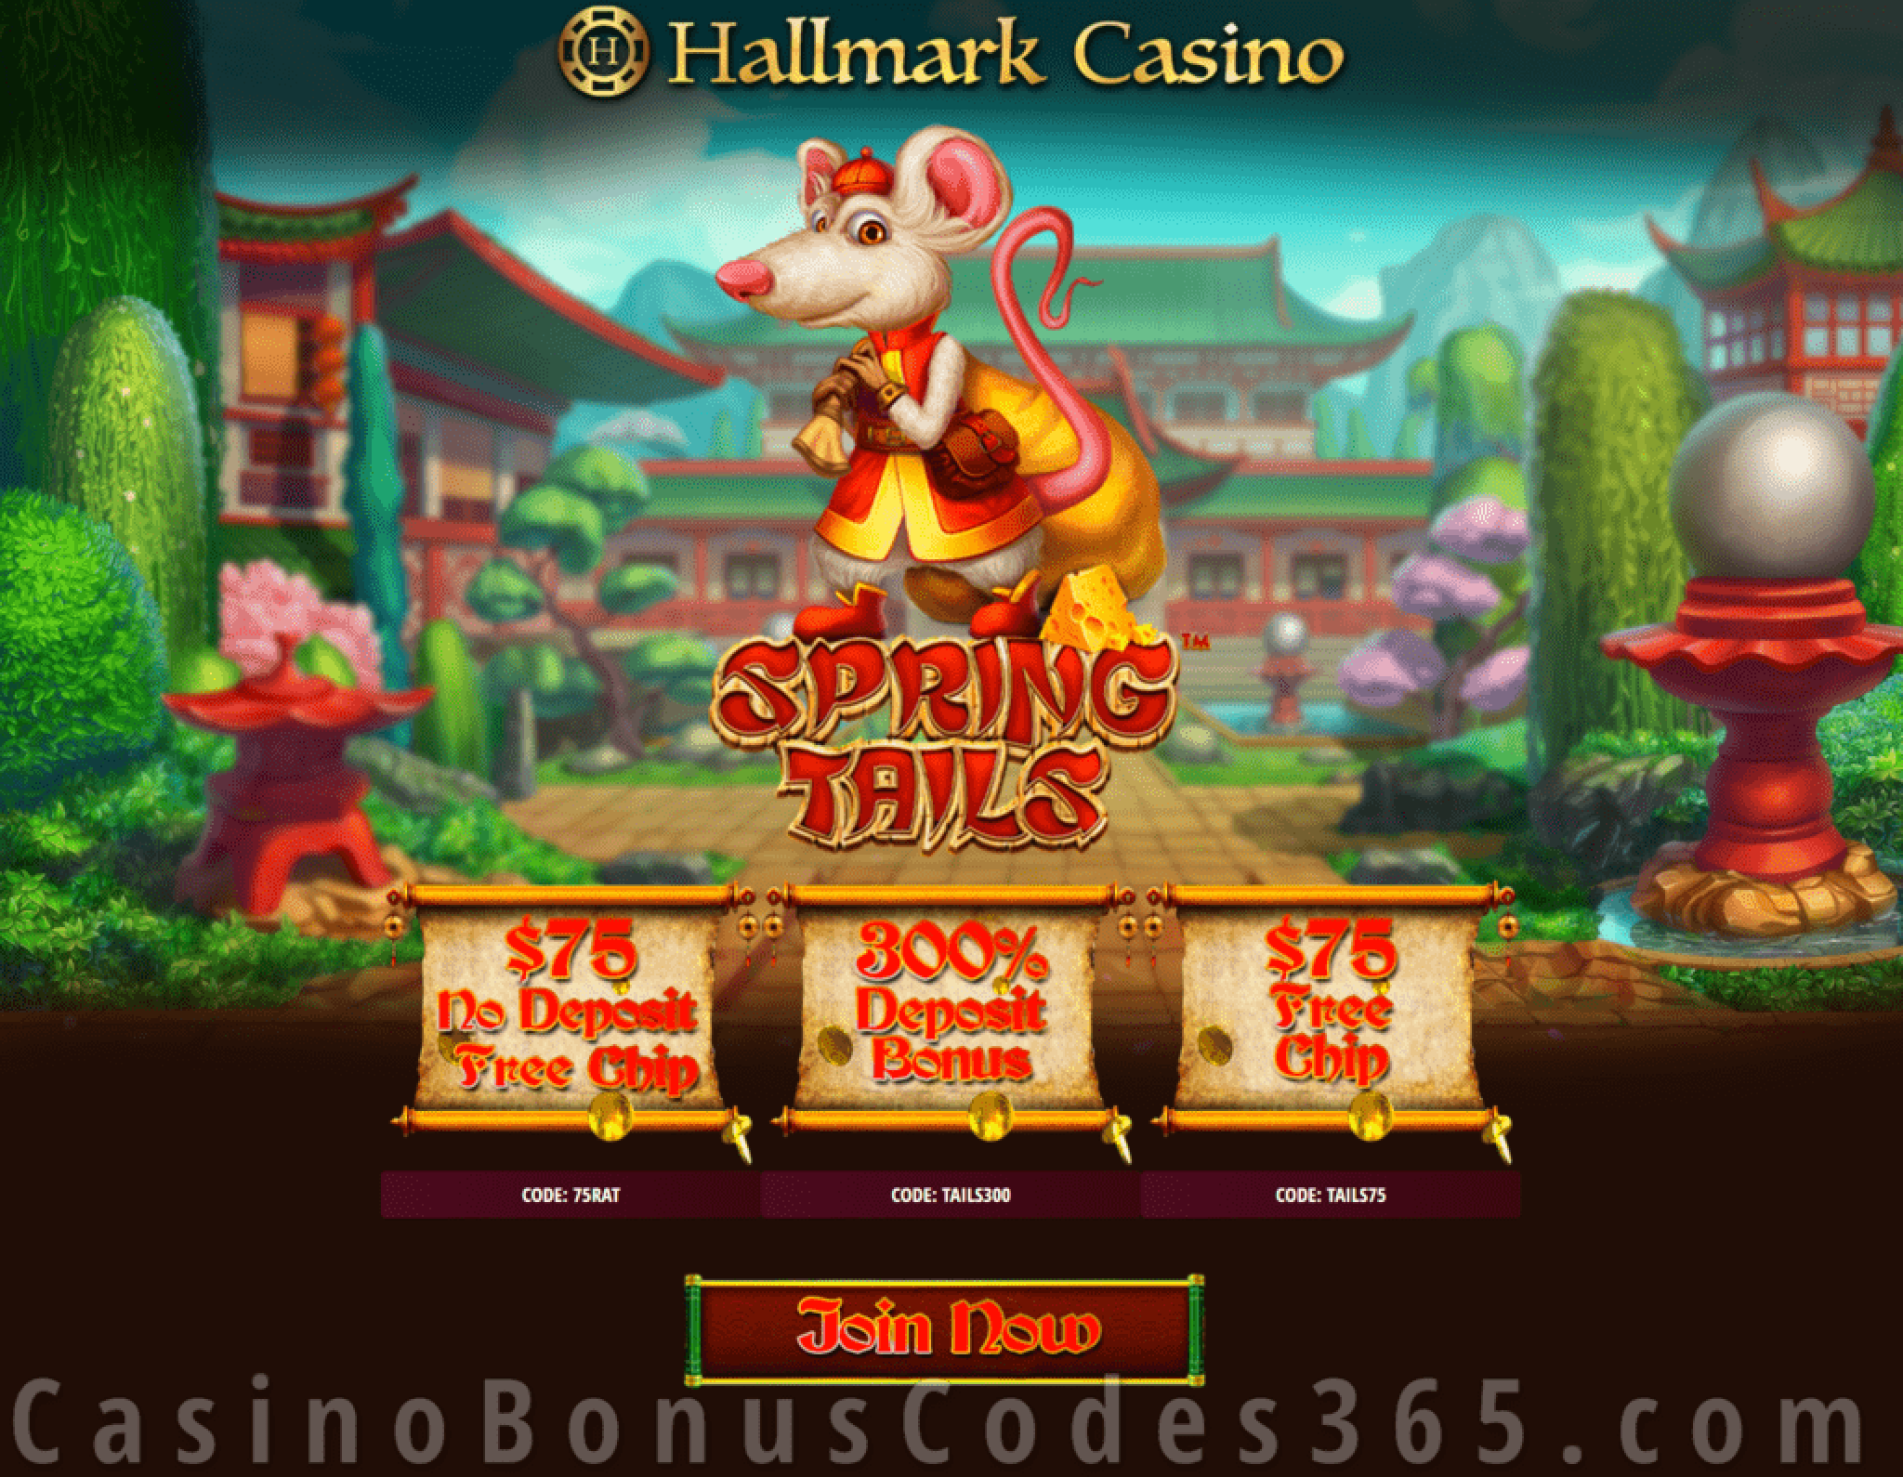 Hallmark Casino Spring Tails $150 FREE Chip plus 300% Match Bonus Special Deal